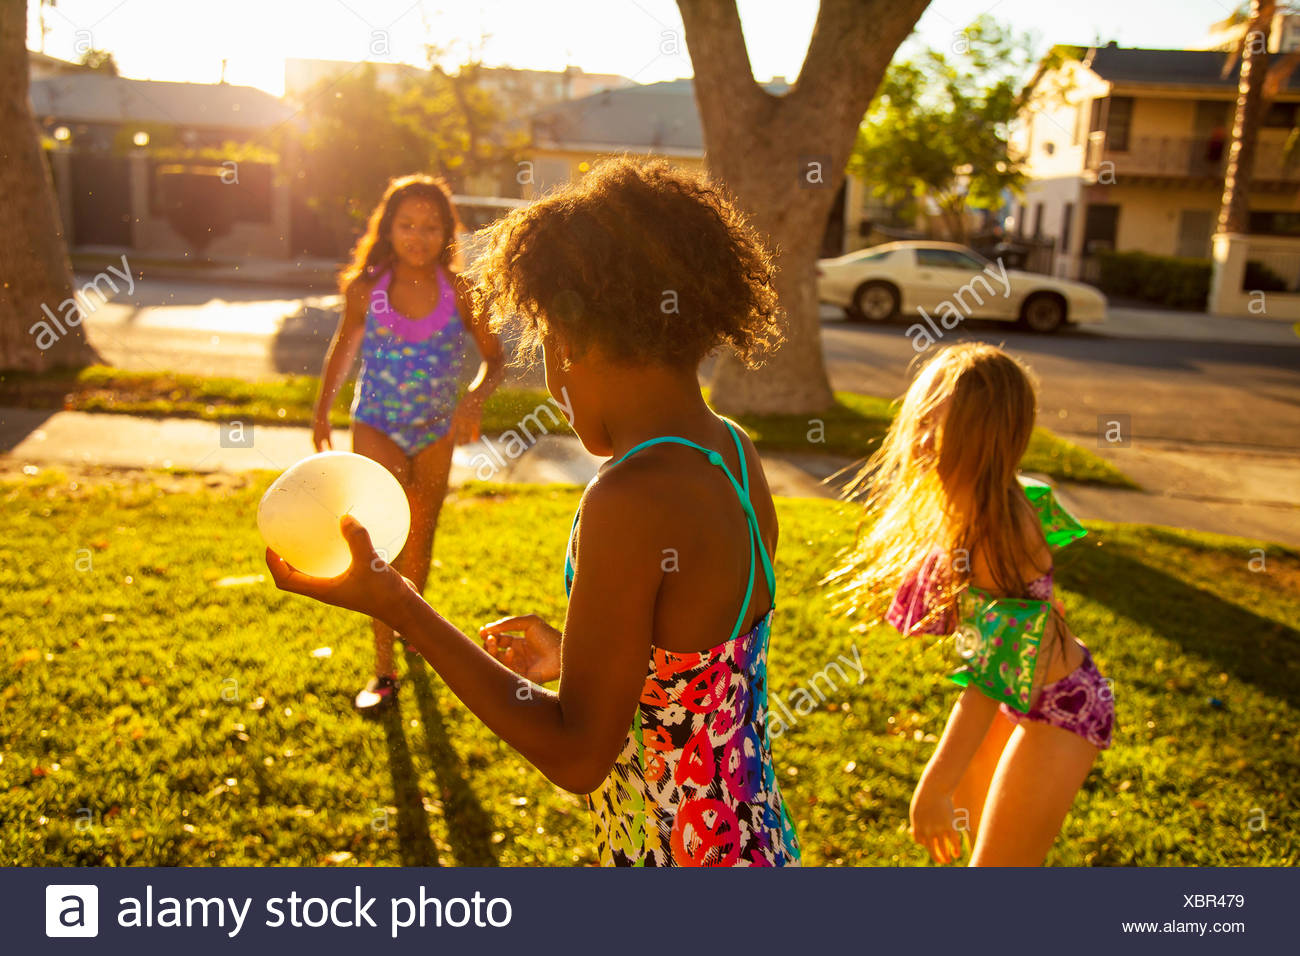 Three girls playing with water balloons in garden - Stock Image